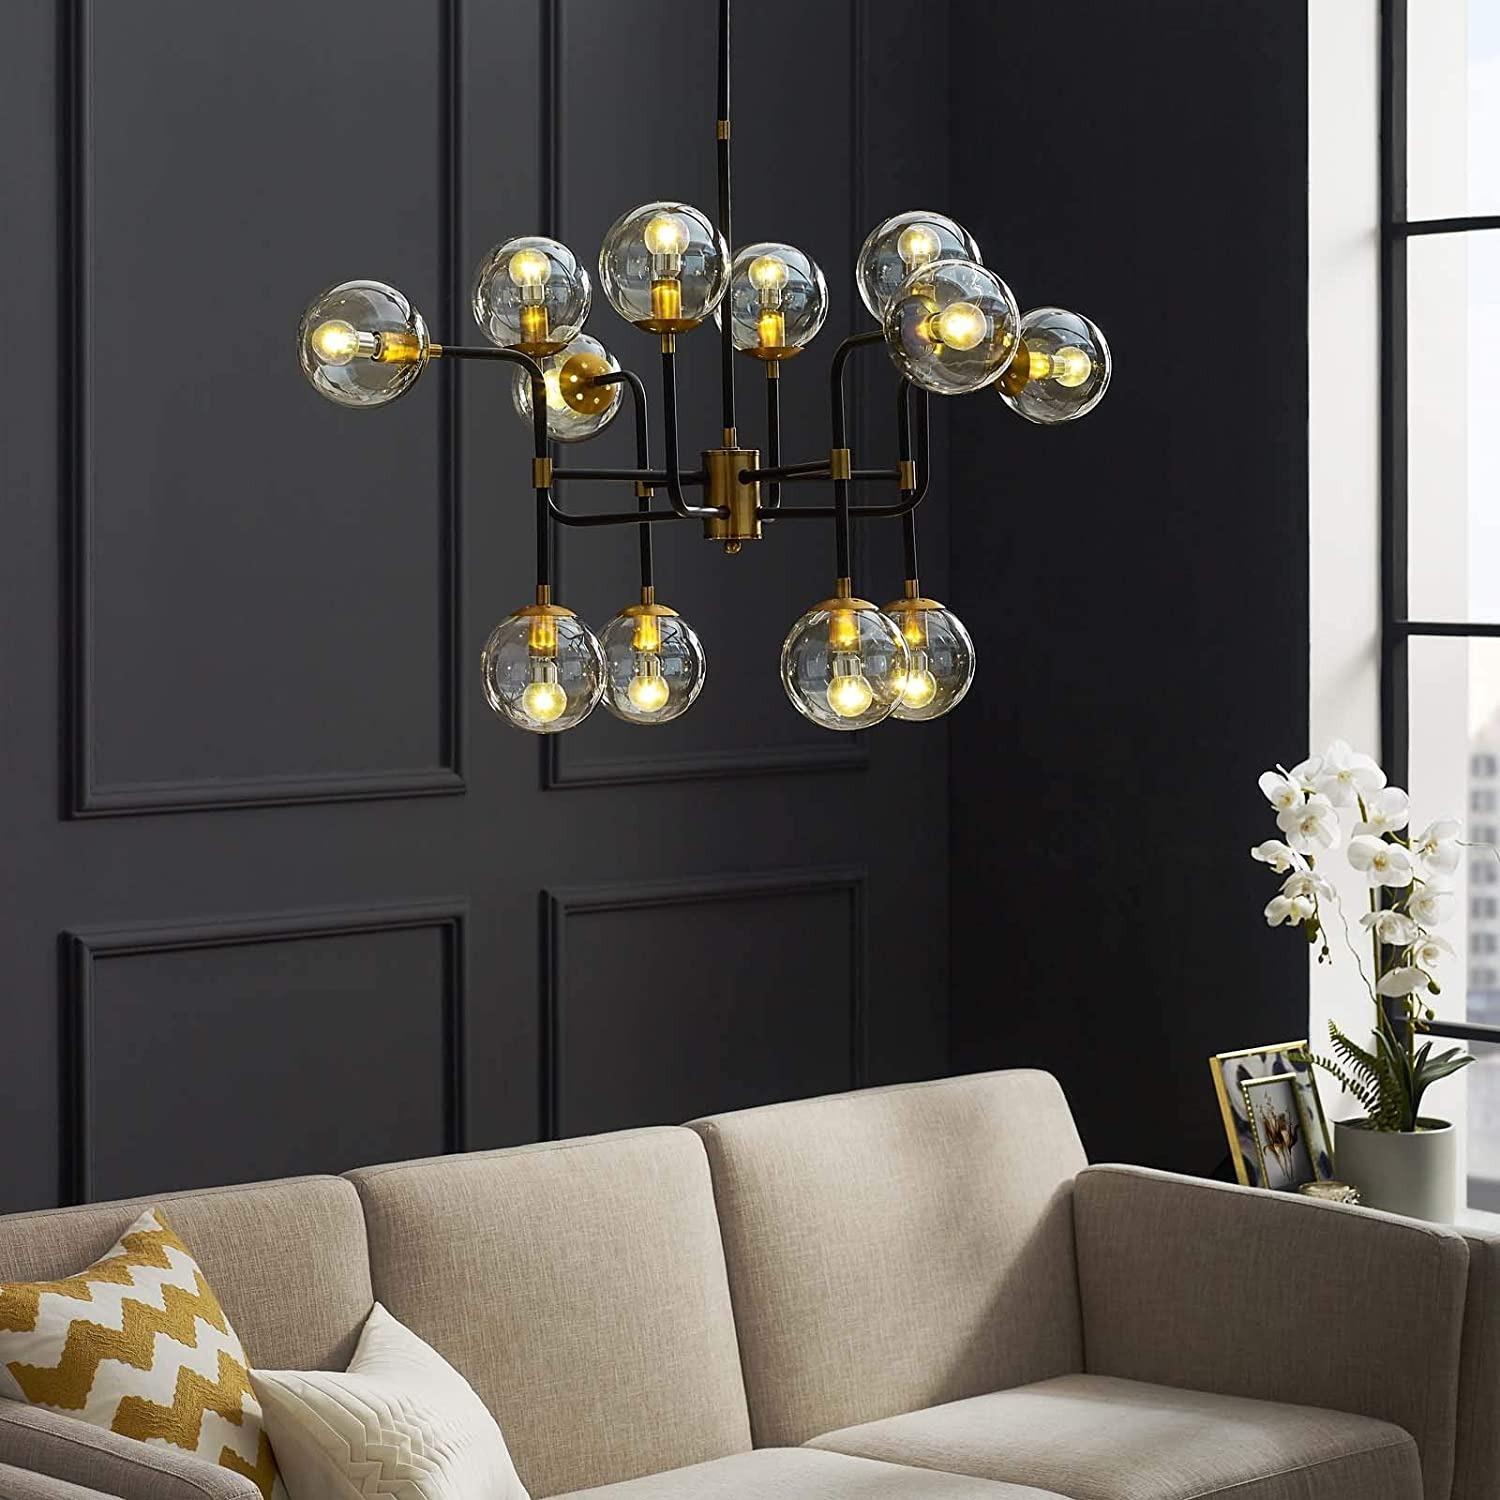 Classic Pendant Chandelier In Antique Brass Finish - image-2